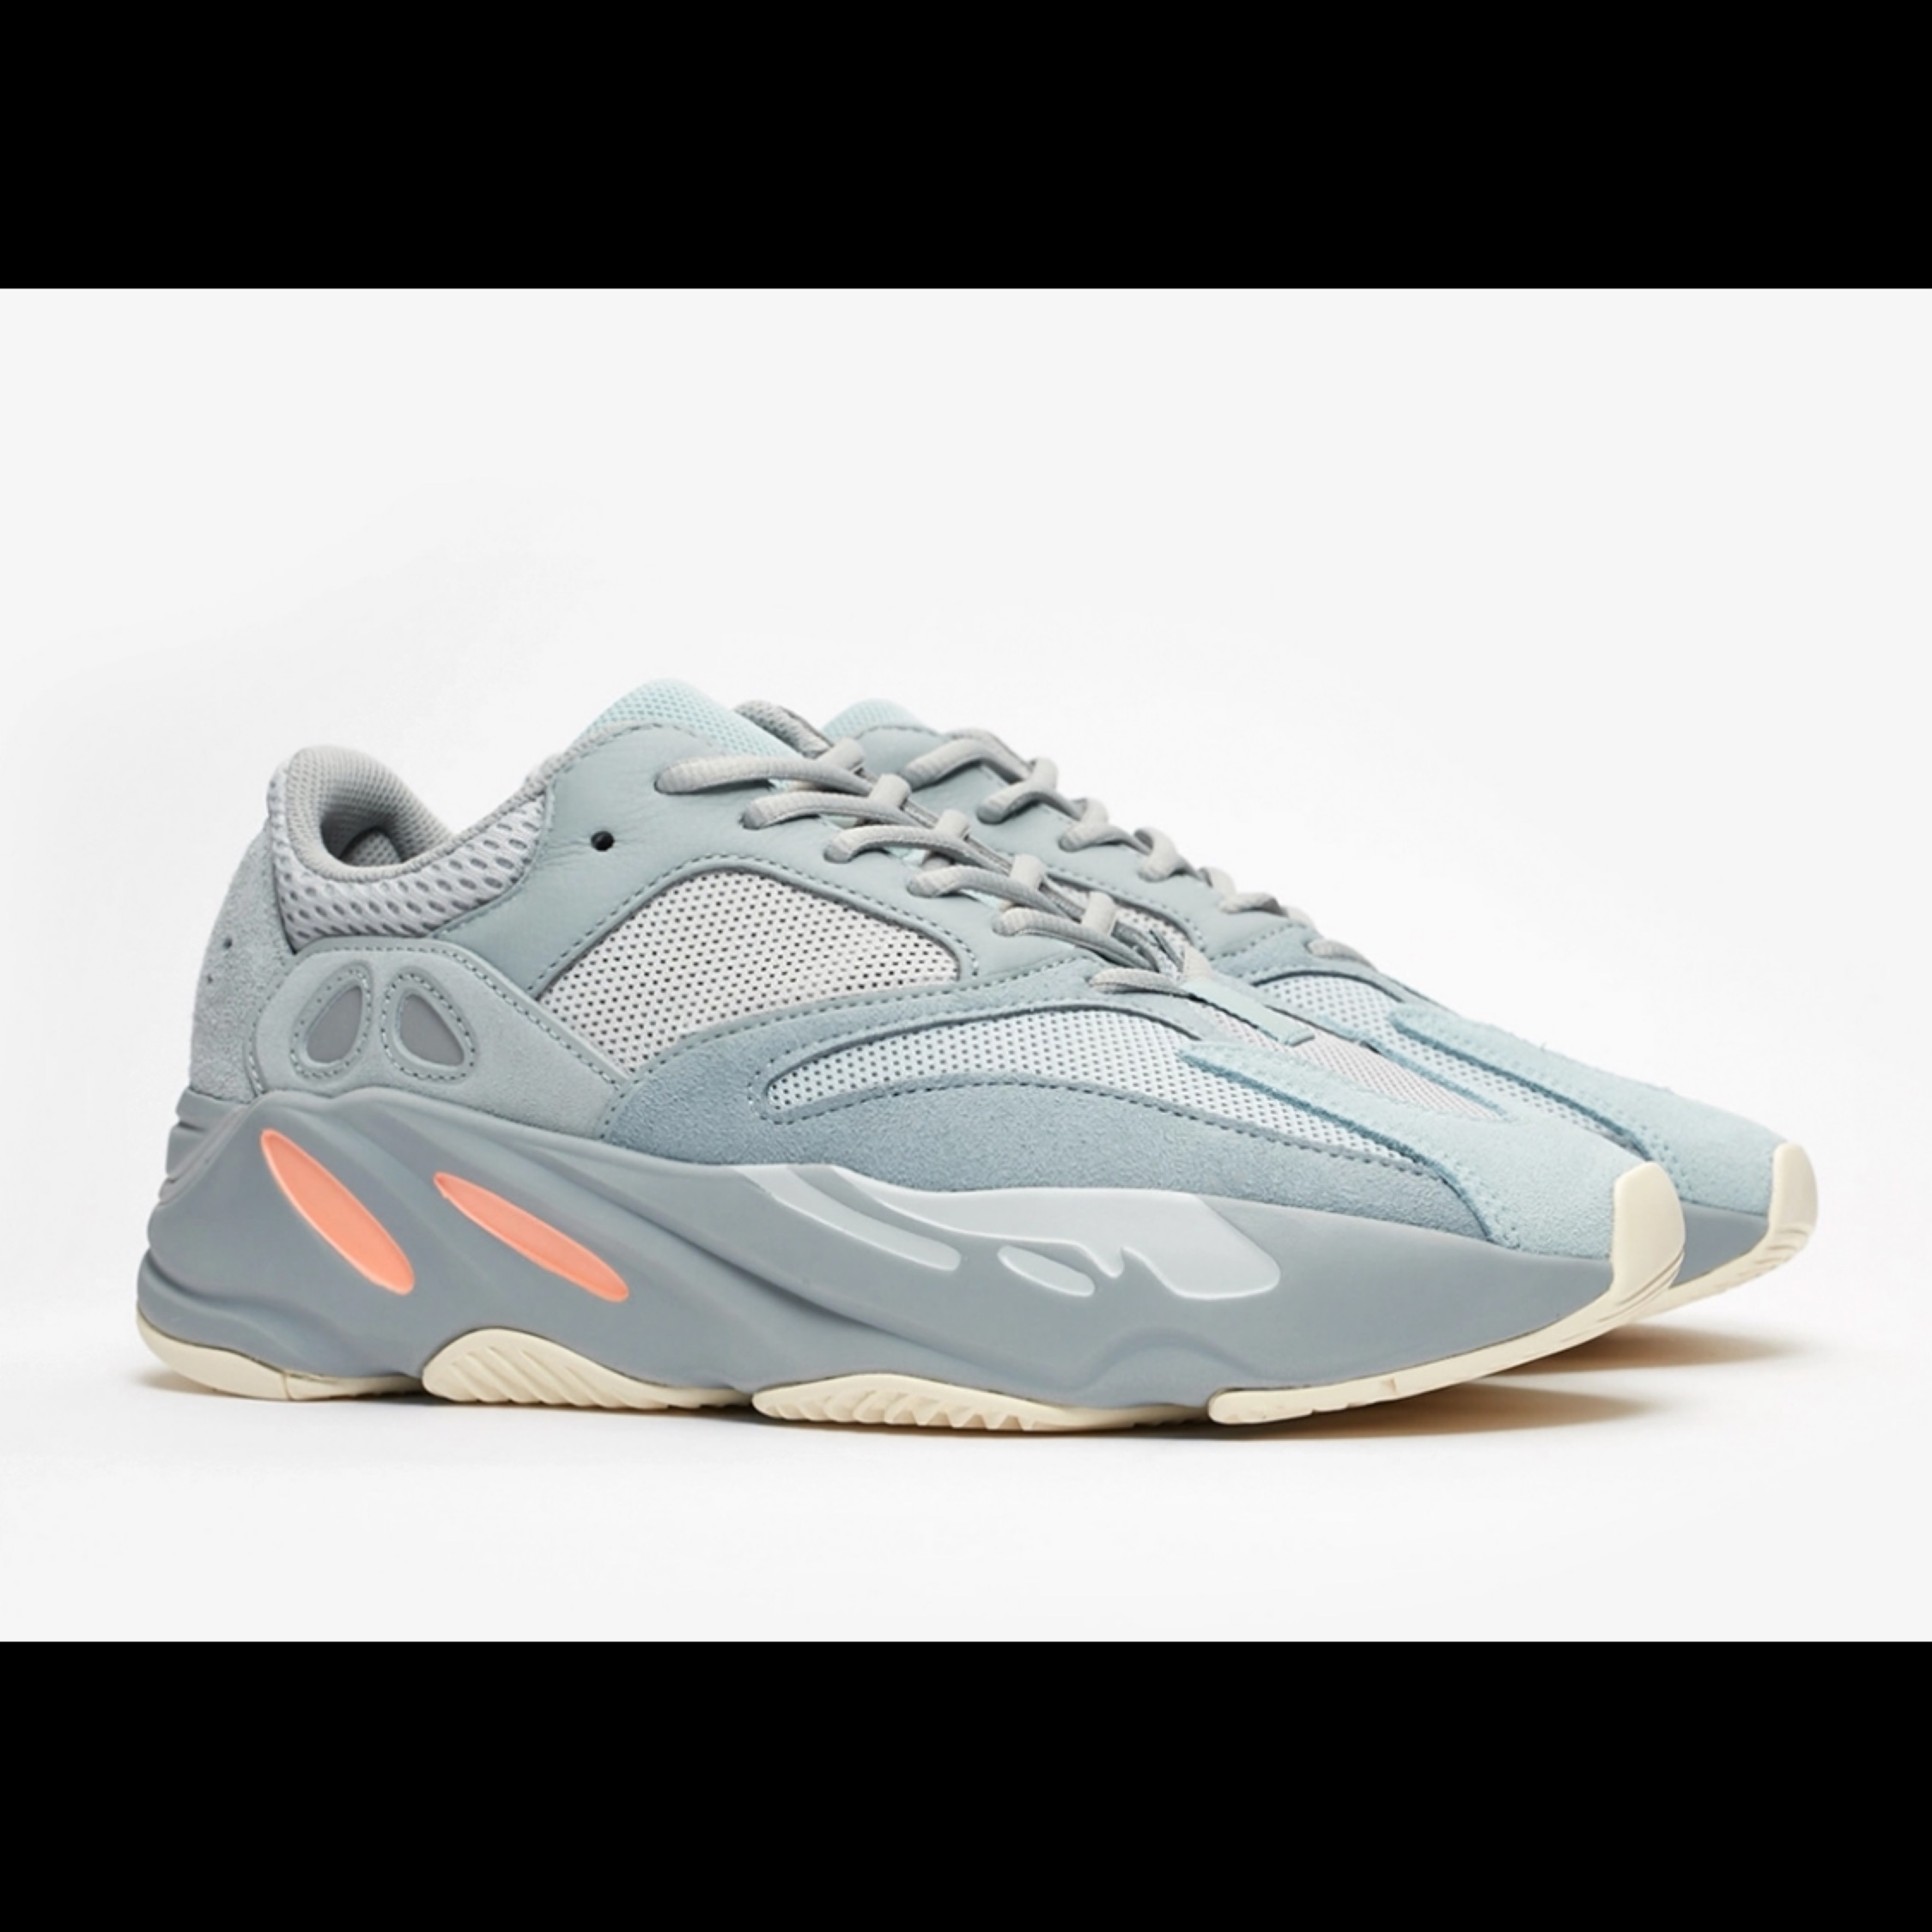 promo code af0e0 d5125 Adidas Yeezy Boost 700 Inertia Size 4